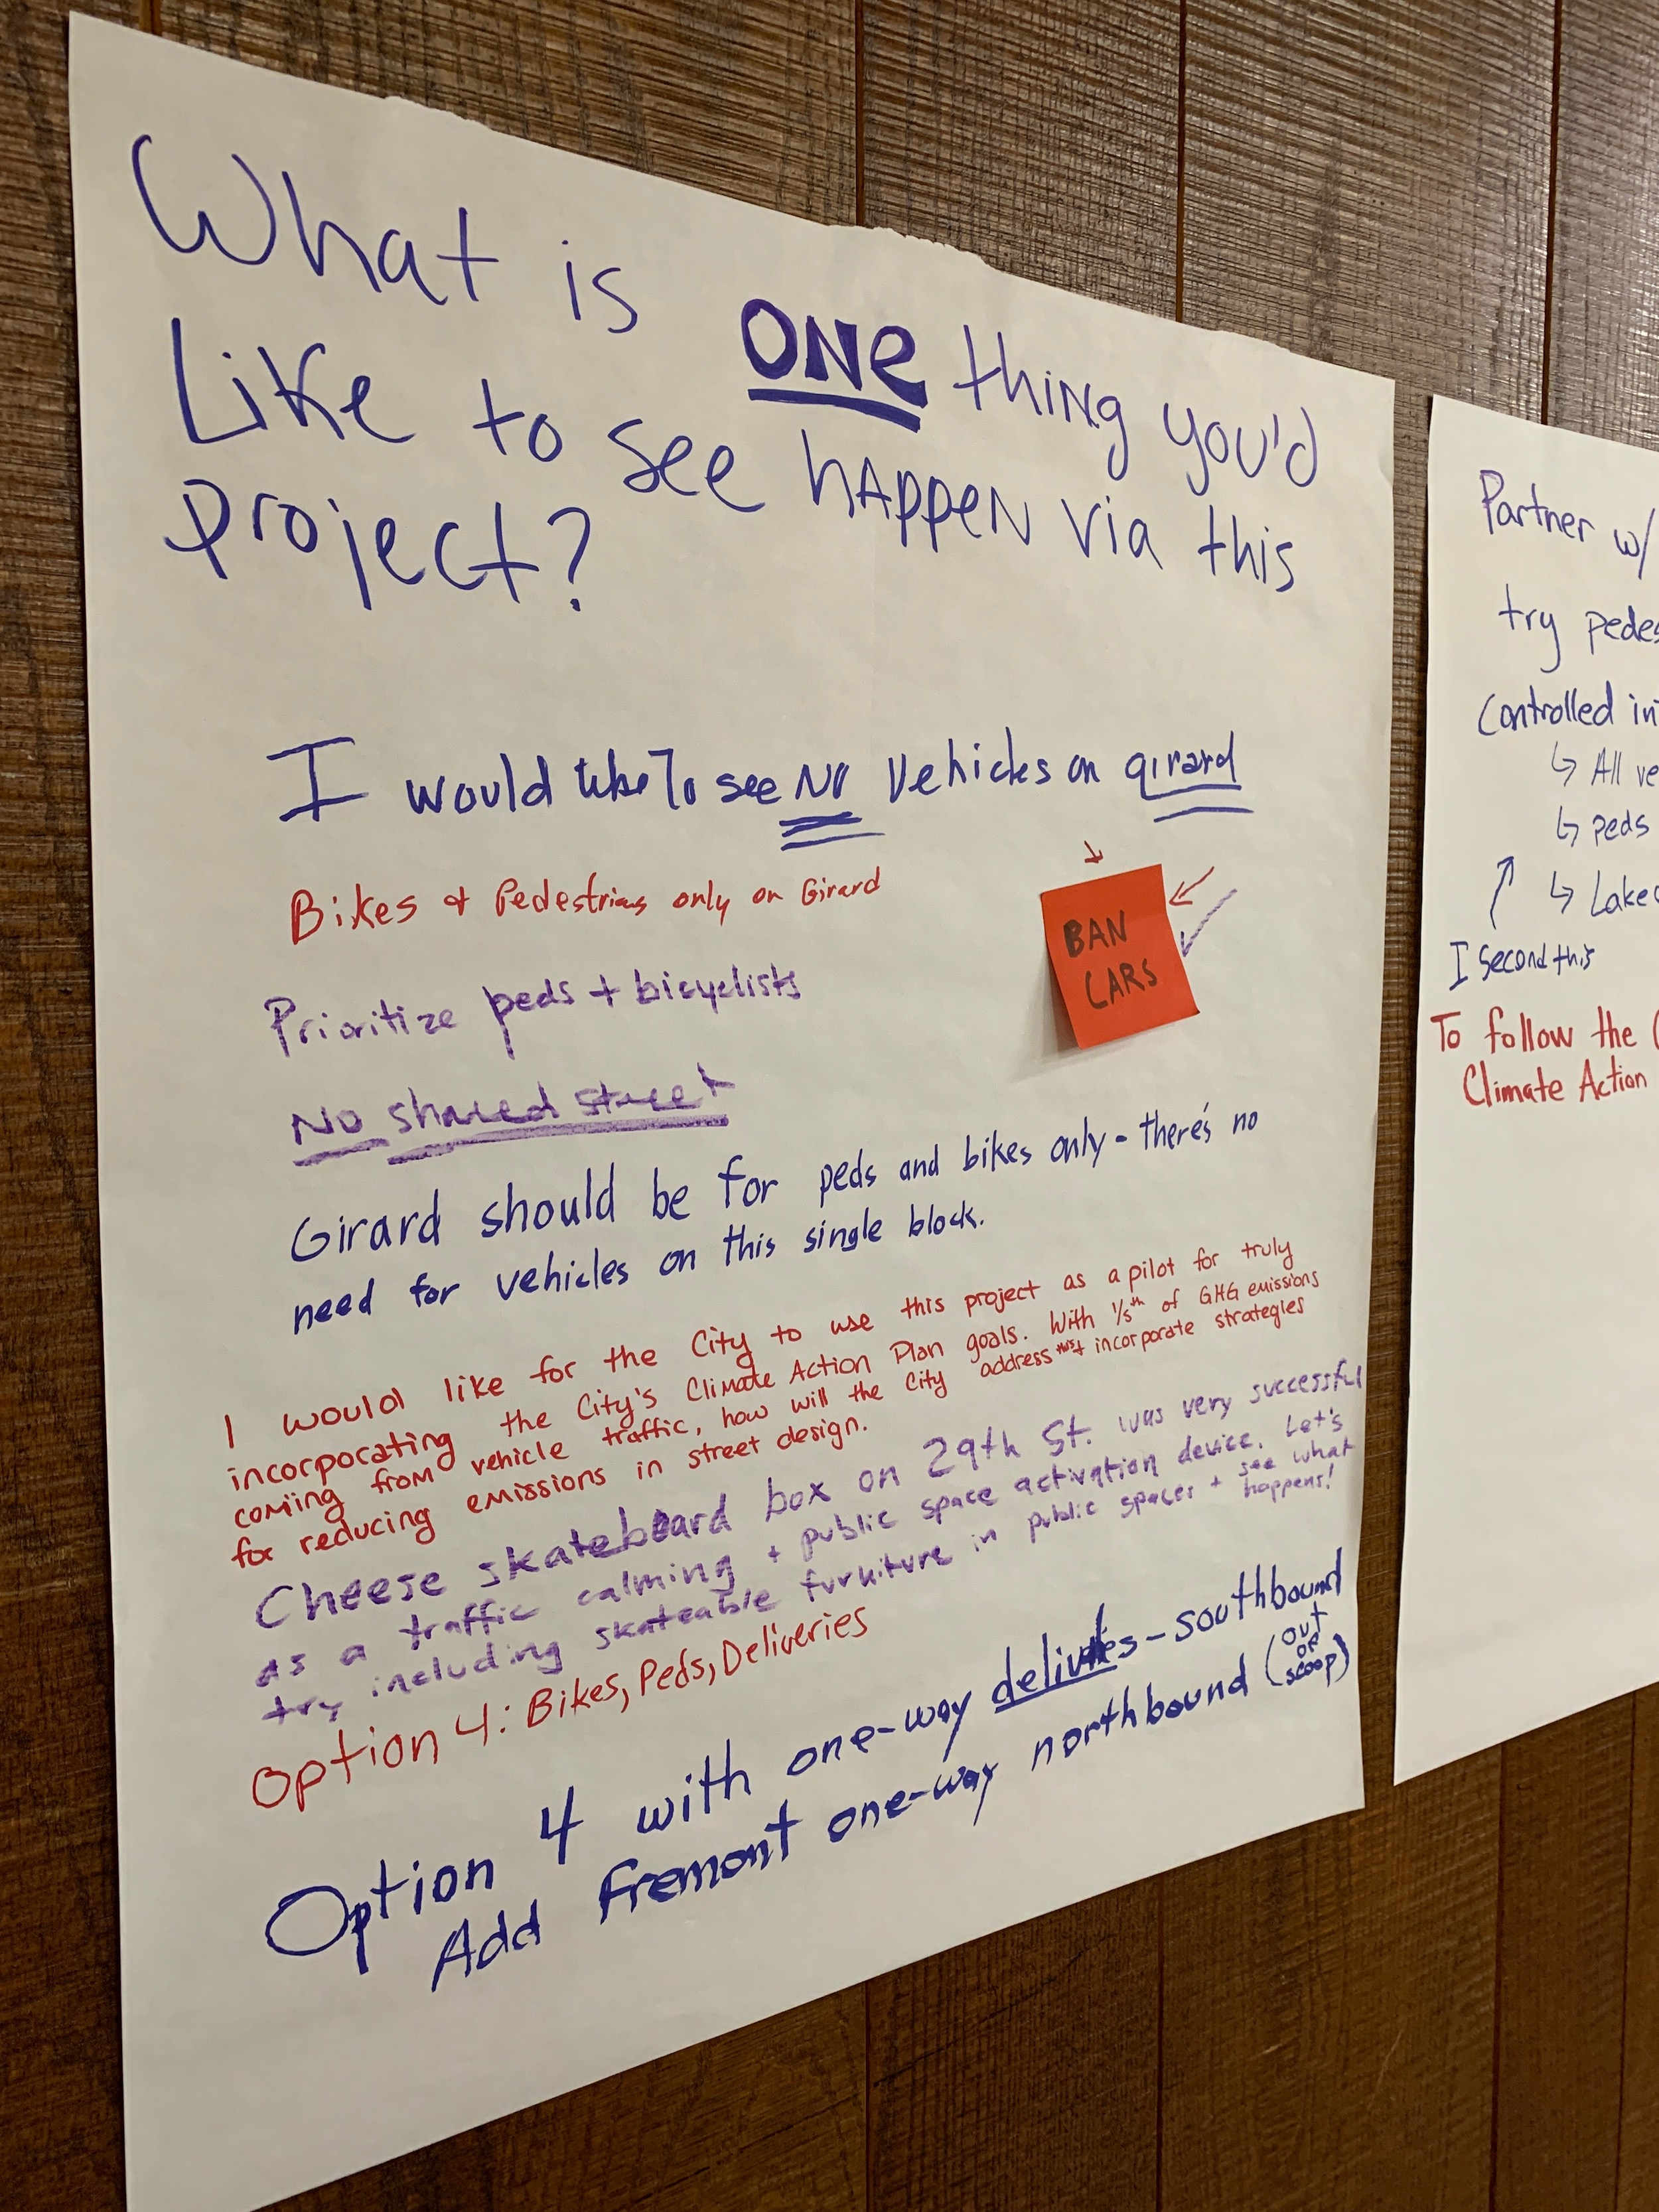 Notes to city planning staff weighing options for the redesign of a block Girard Avenue in Uptown were left by residents who attended an open house on Jan. 24. Photo by Andrew Hazzard.